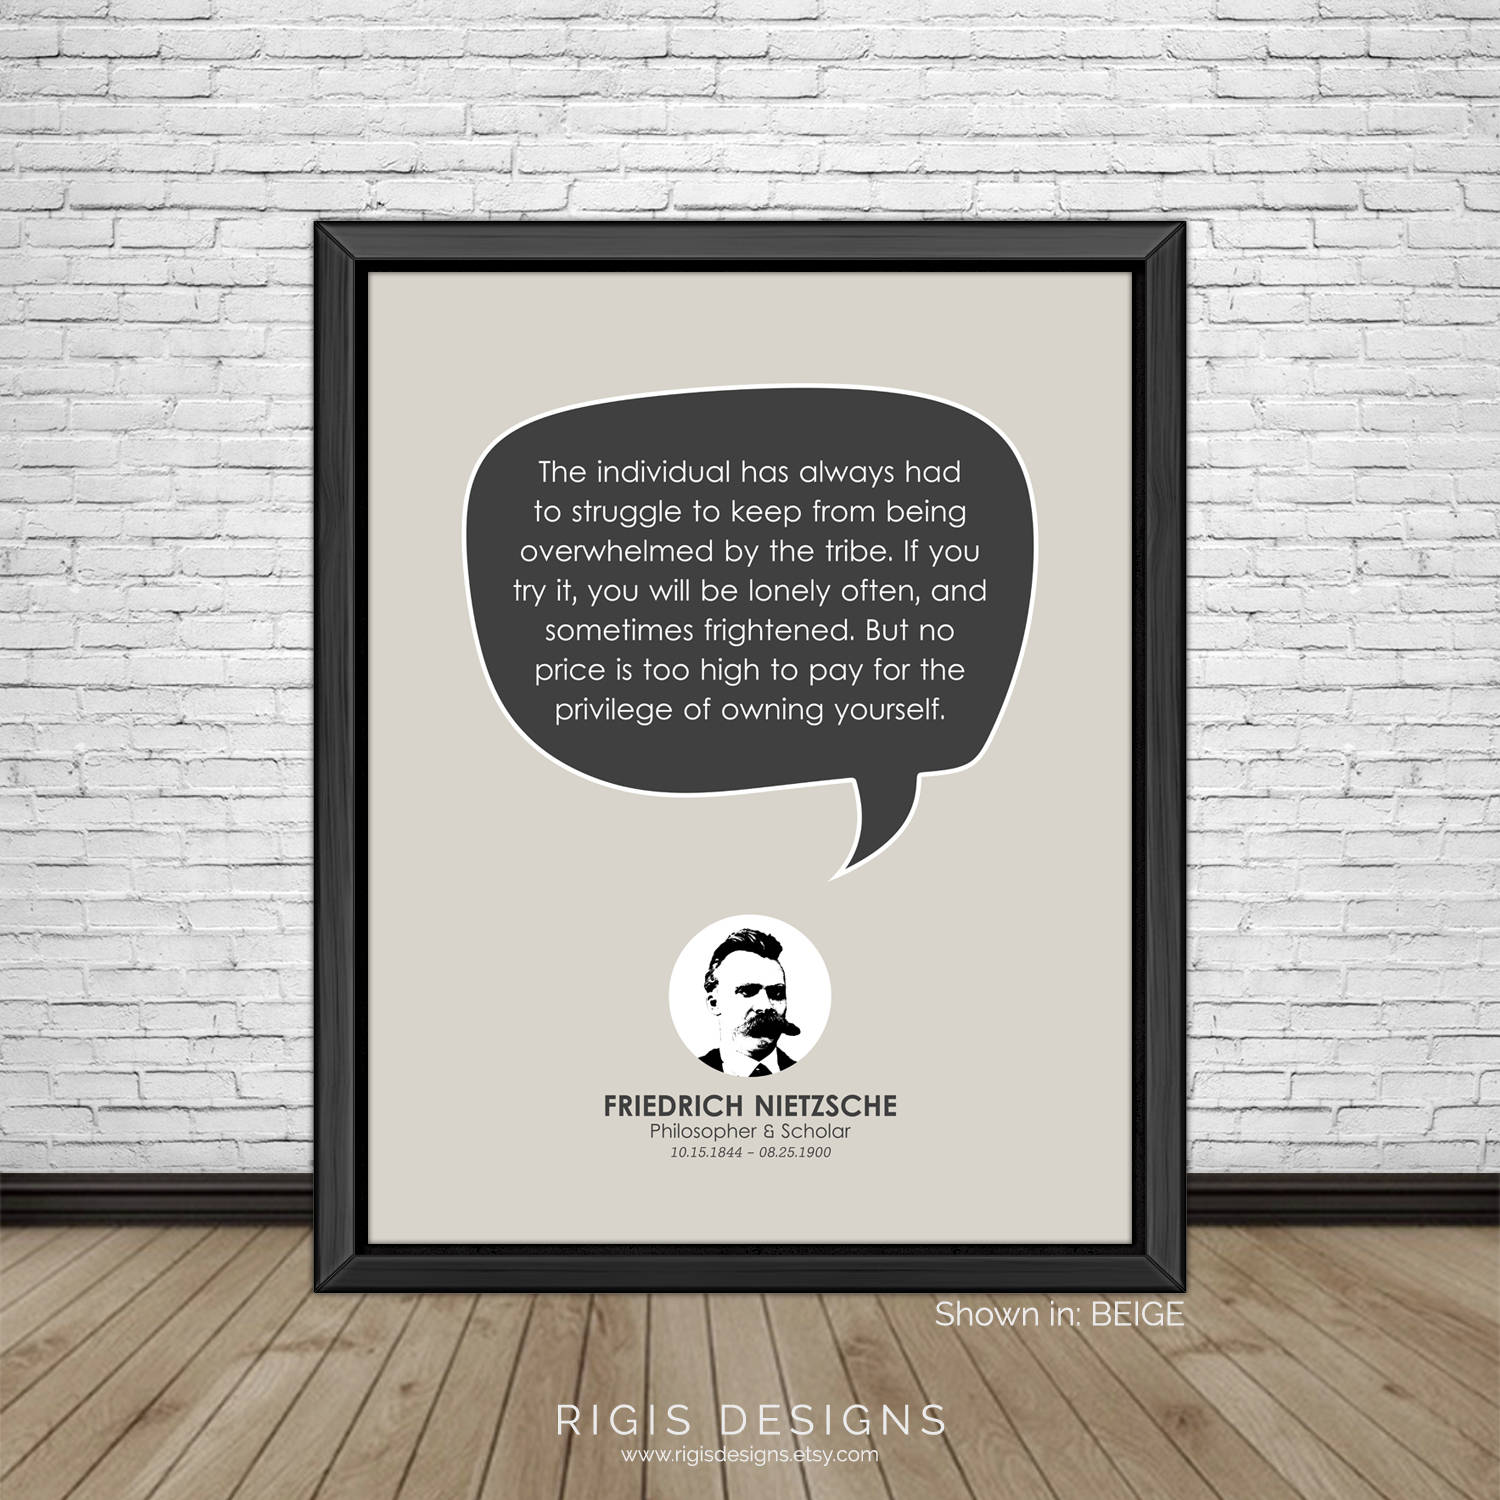 Friedrich Nietzsche Quote, Philosopher & Scholar